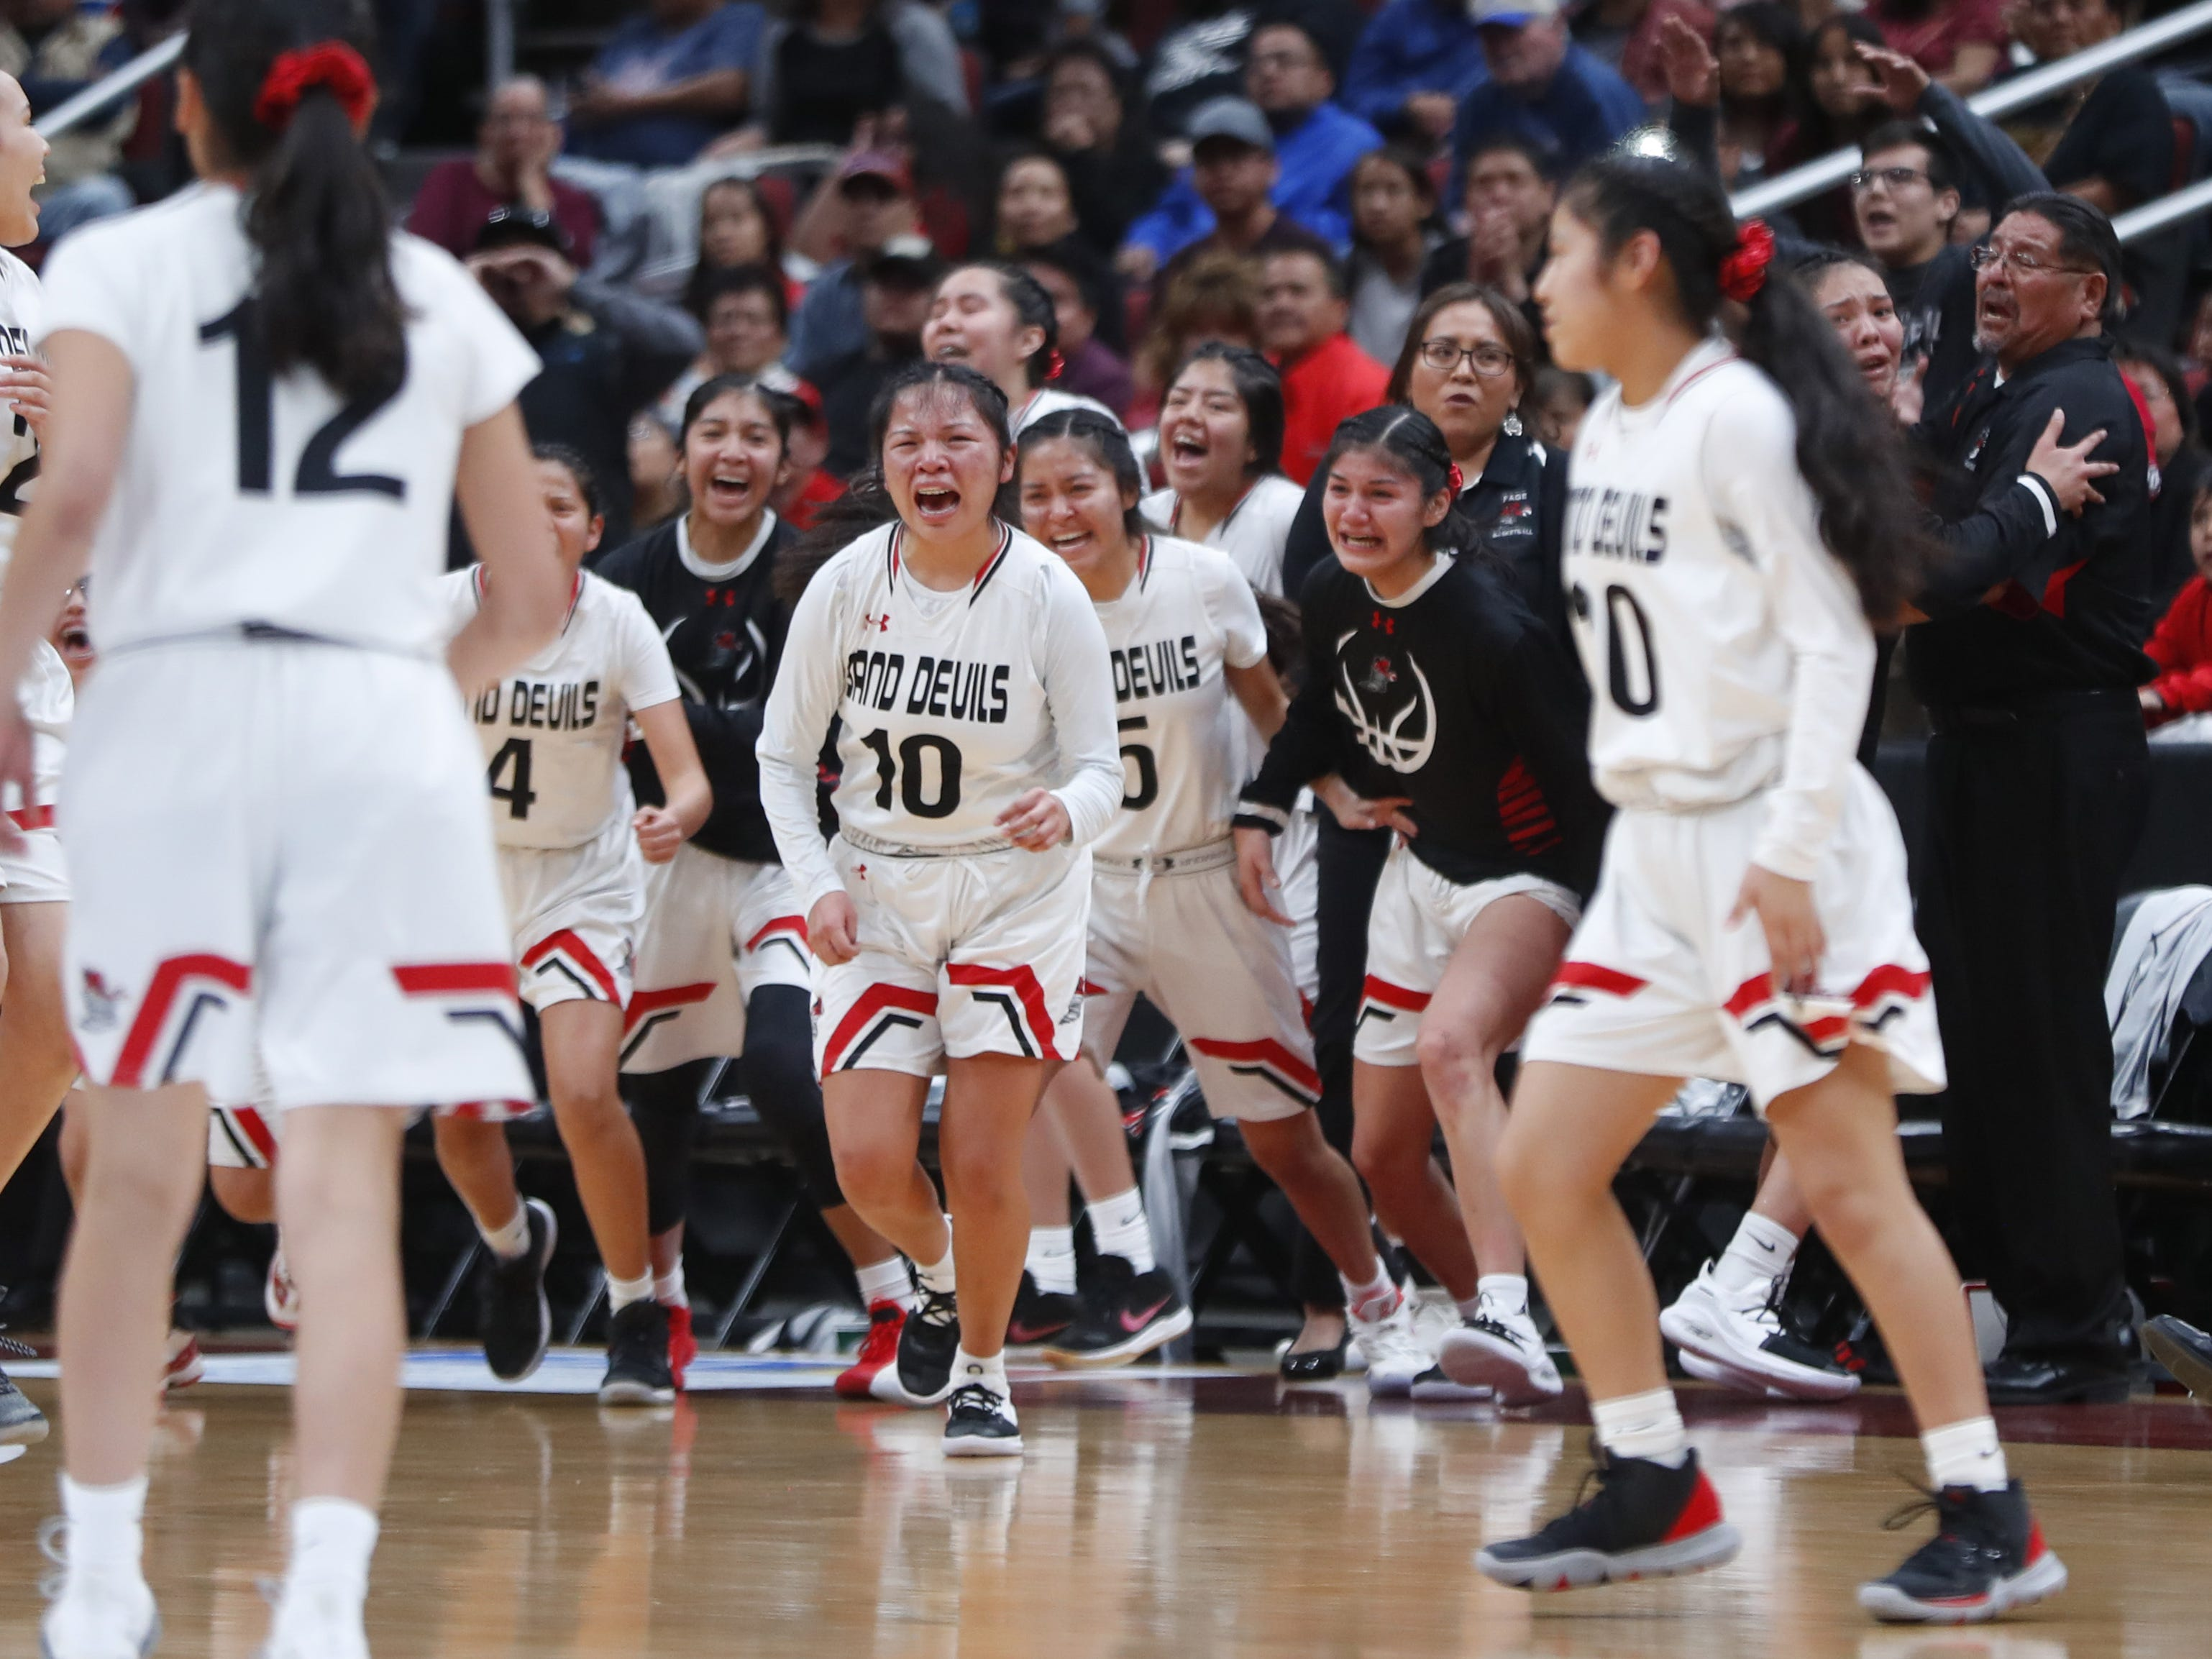 Page's Mikala Benally (10) charges the court with her teammates after winning the 3A girls basketball state championship game over Holbrook at Gila River Arena in Glendale, Ariz. on February 23, 2019.